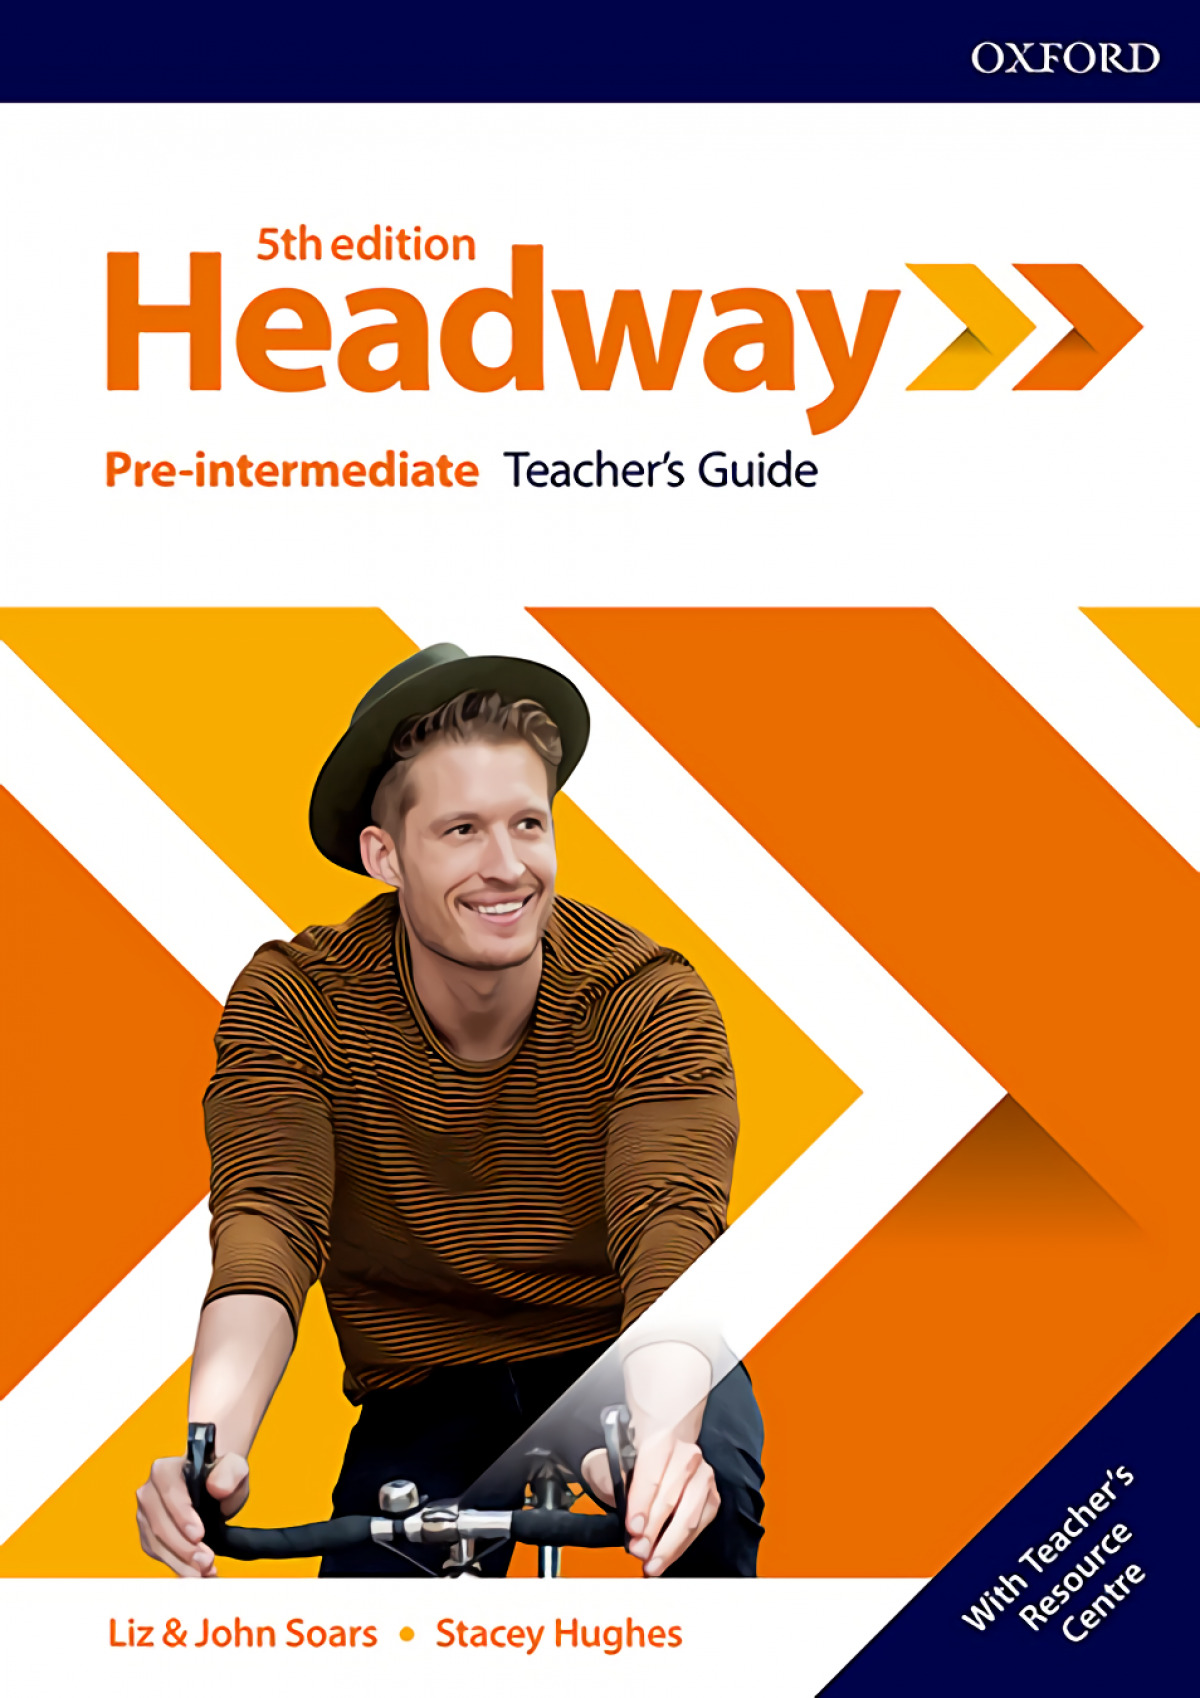 HEADWAY PRE INTERMEDIATE TEACHERS GUIDE AND RESOURCE PACK FIFTH EDITION